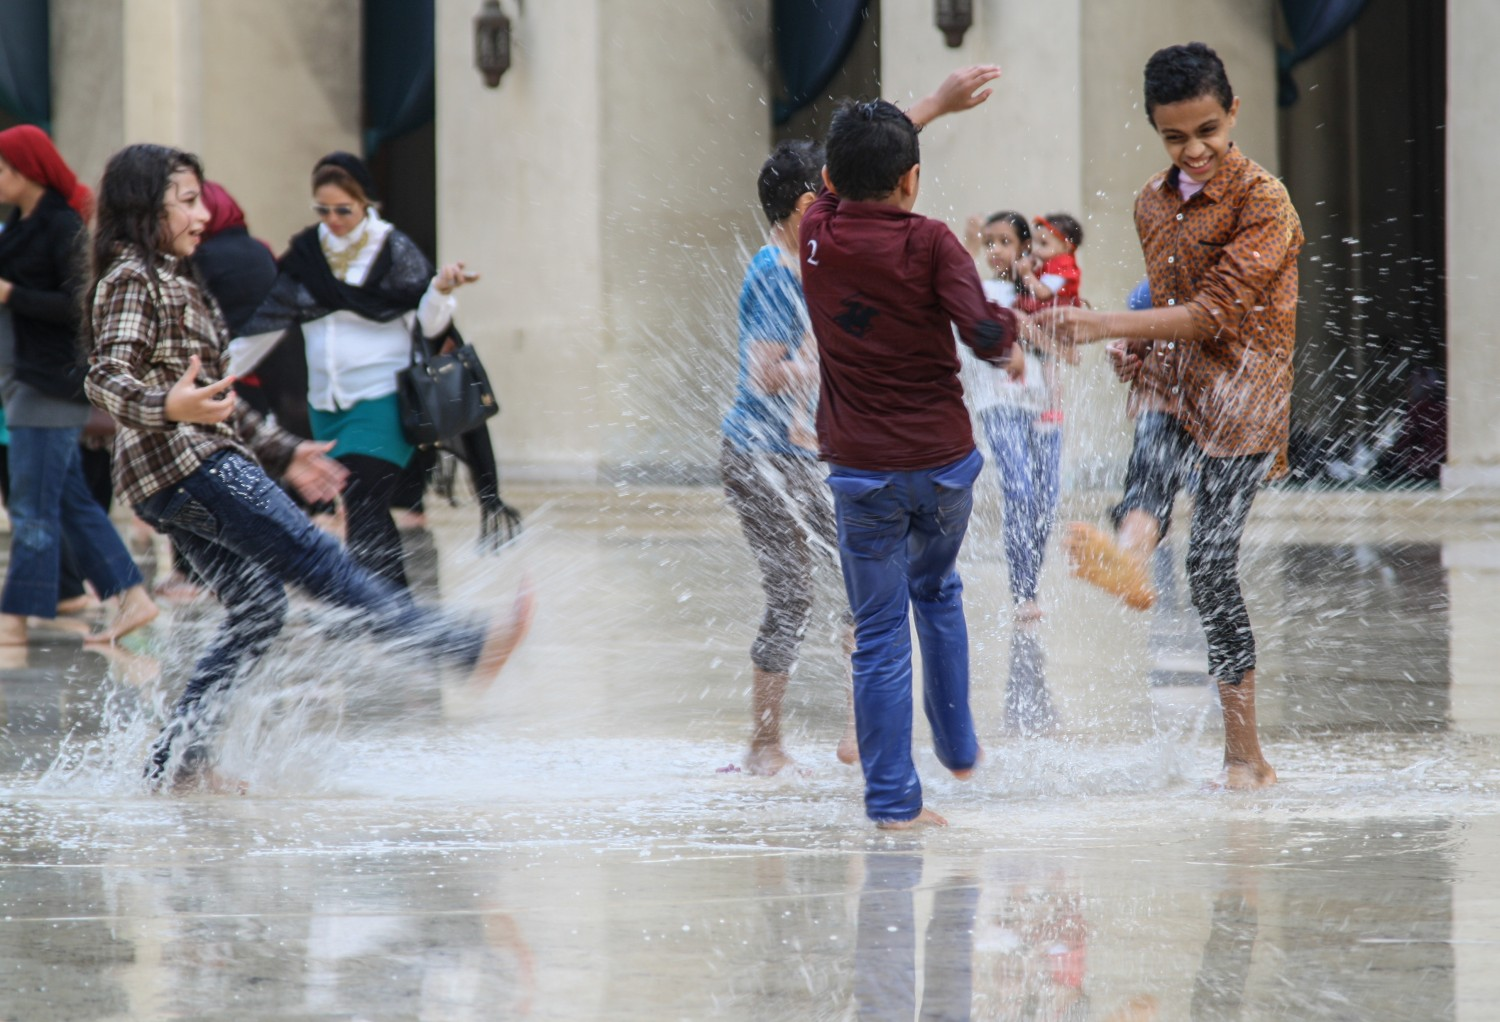 Children splashing water in the vast hall of al-Hakim mosque in Cairo after heavy rains. Credit: Enas El Masry